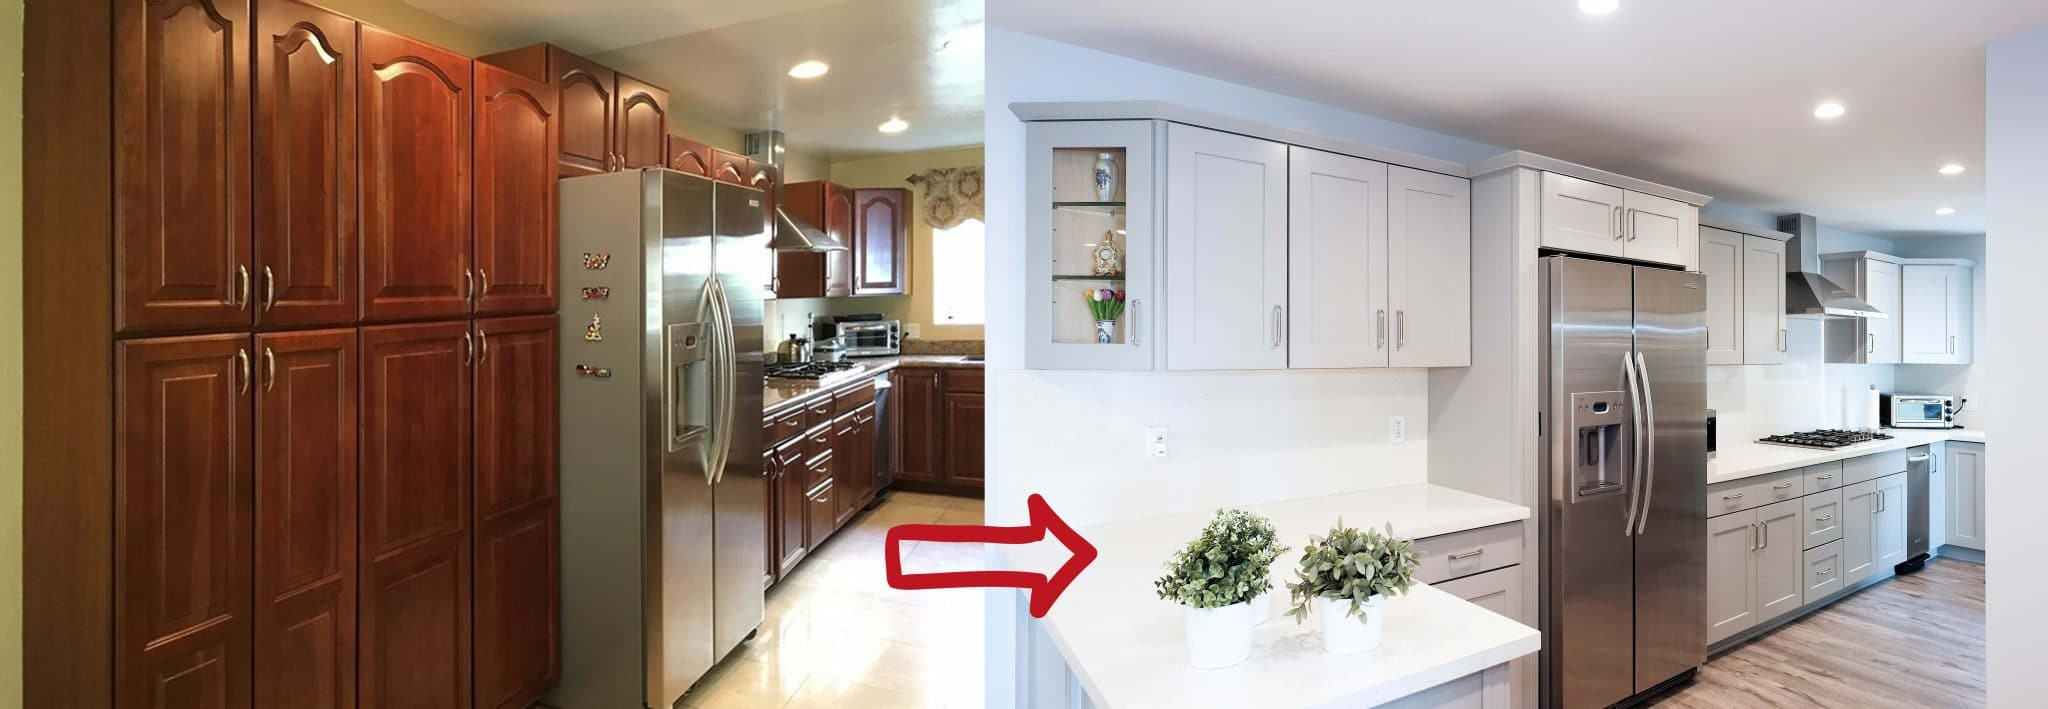 Warmth Neutrality Combined Gray Kitchen Cabinets Best Online Cabinets